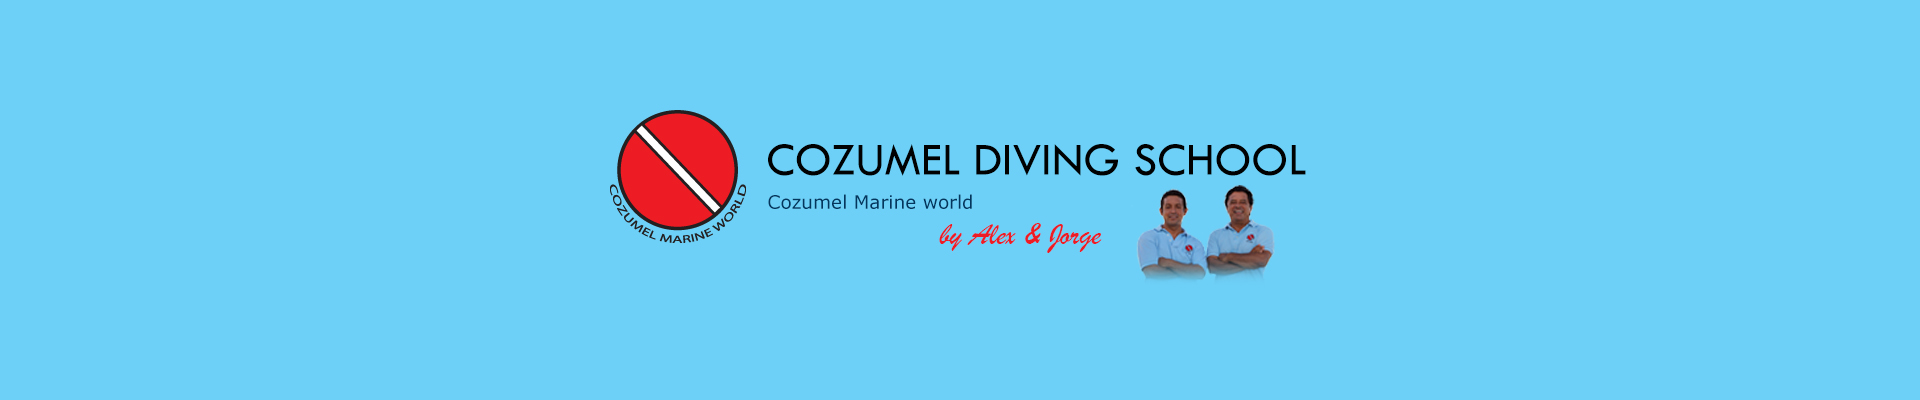 Cozumel Diving School